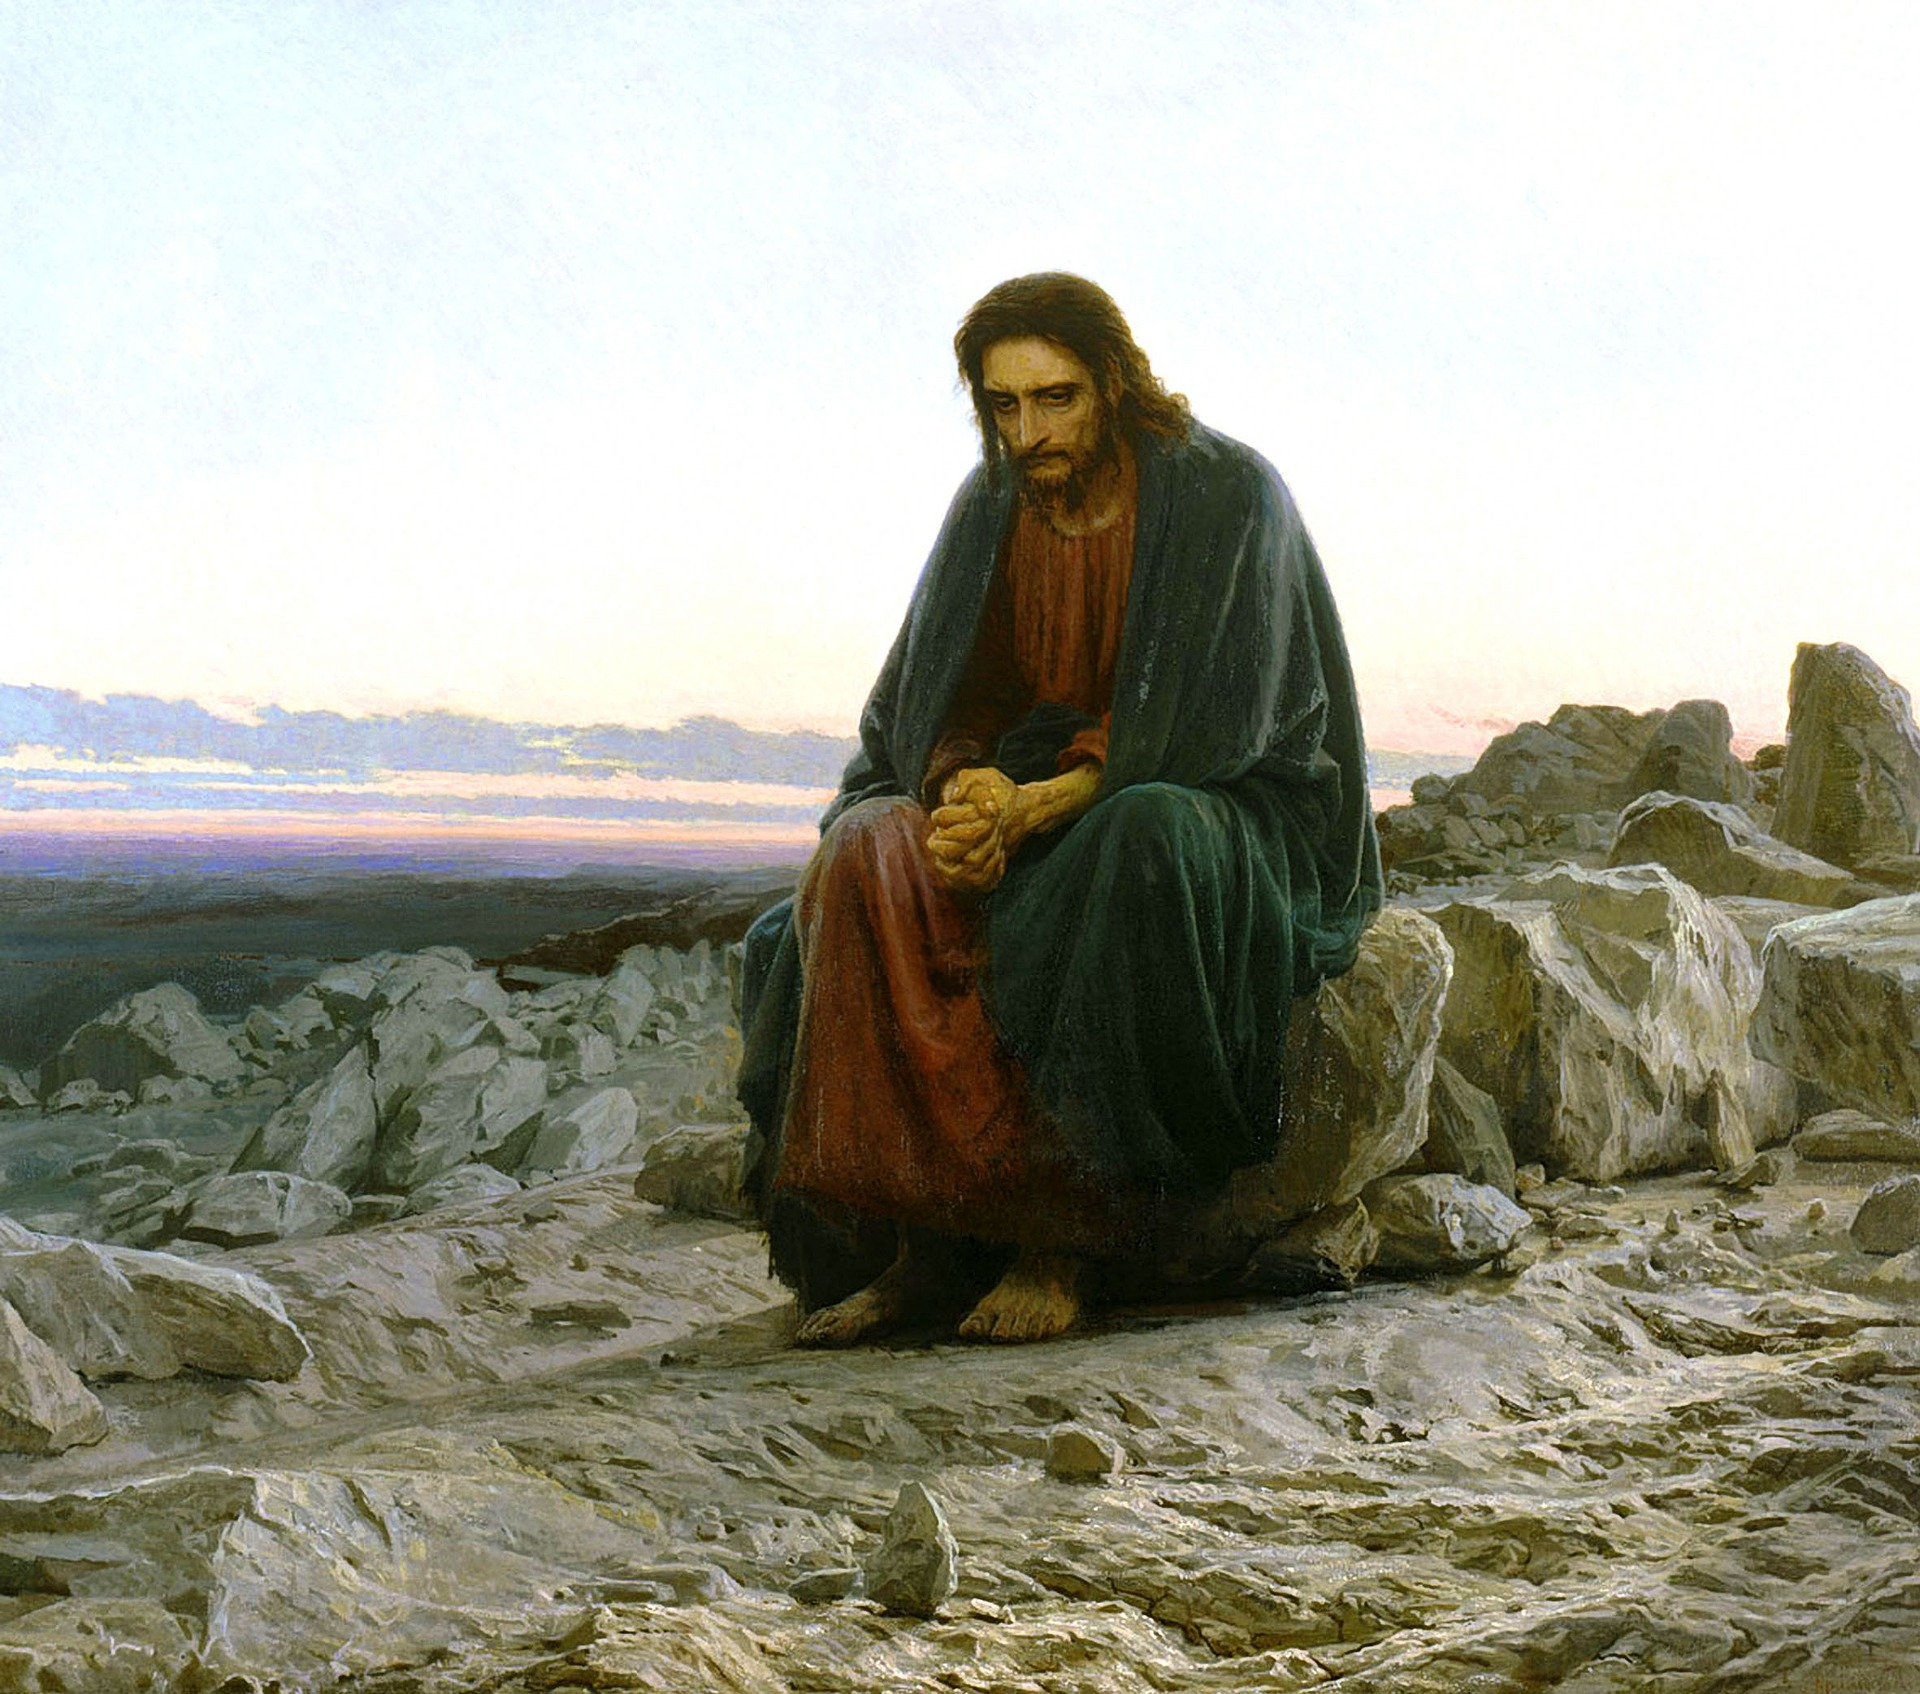 So Jesus looks really depressed in this free stock photo. Let's just say He was in deep introspection.